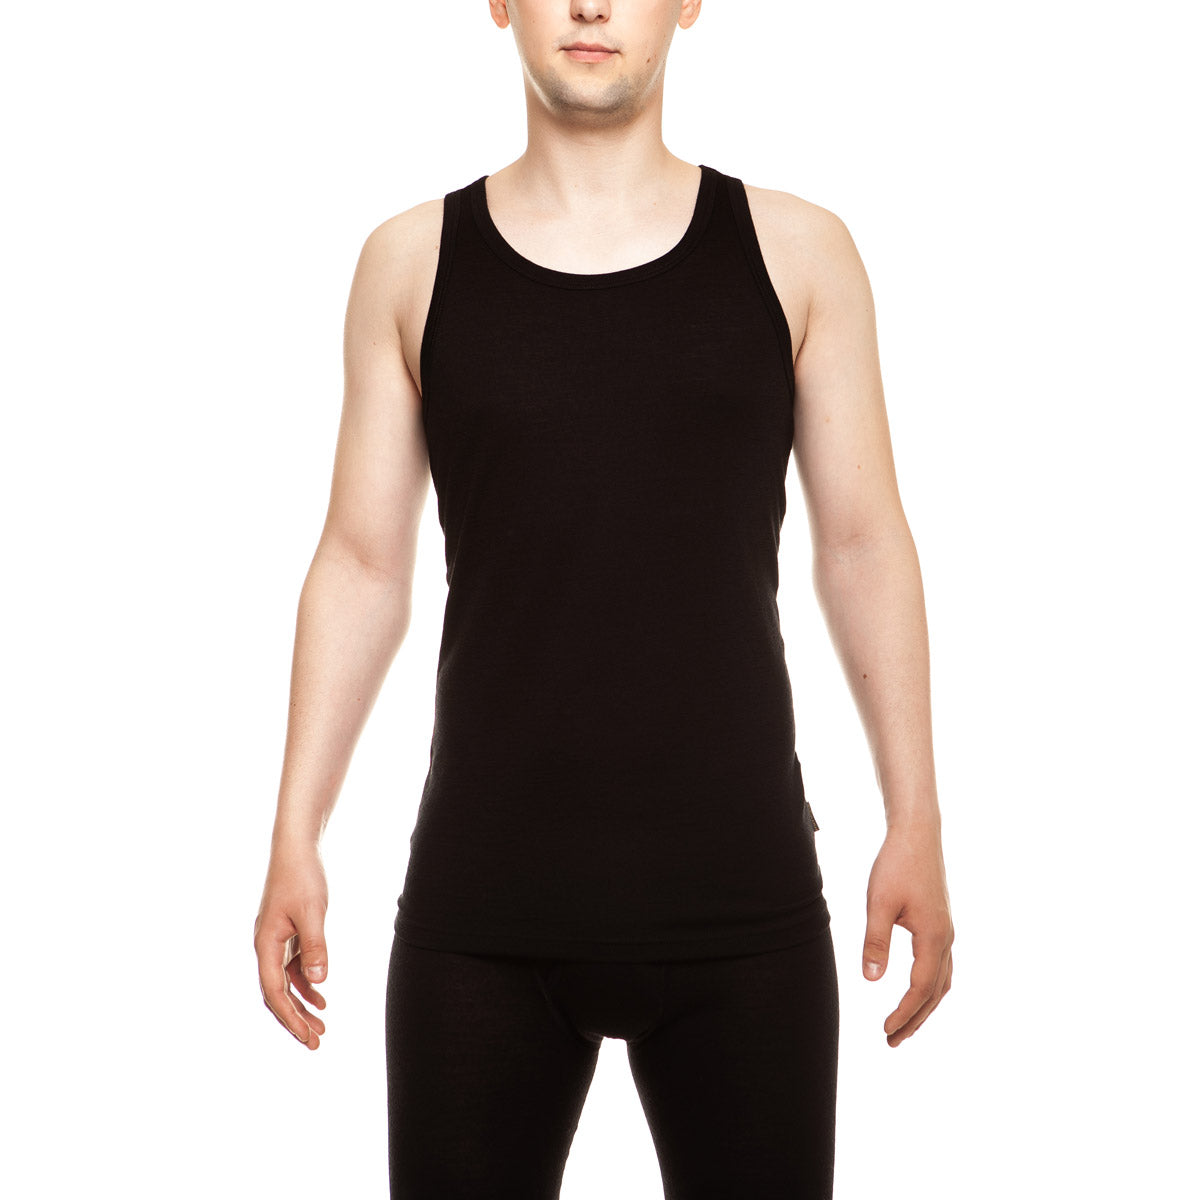 menique Men's Merino 160 Tank Top Black Color in nature